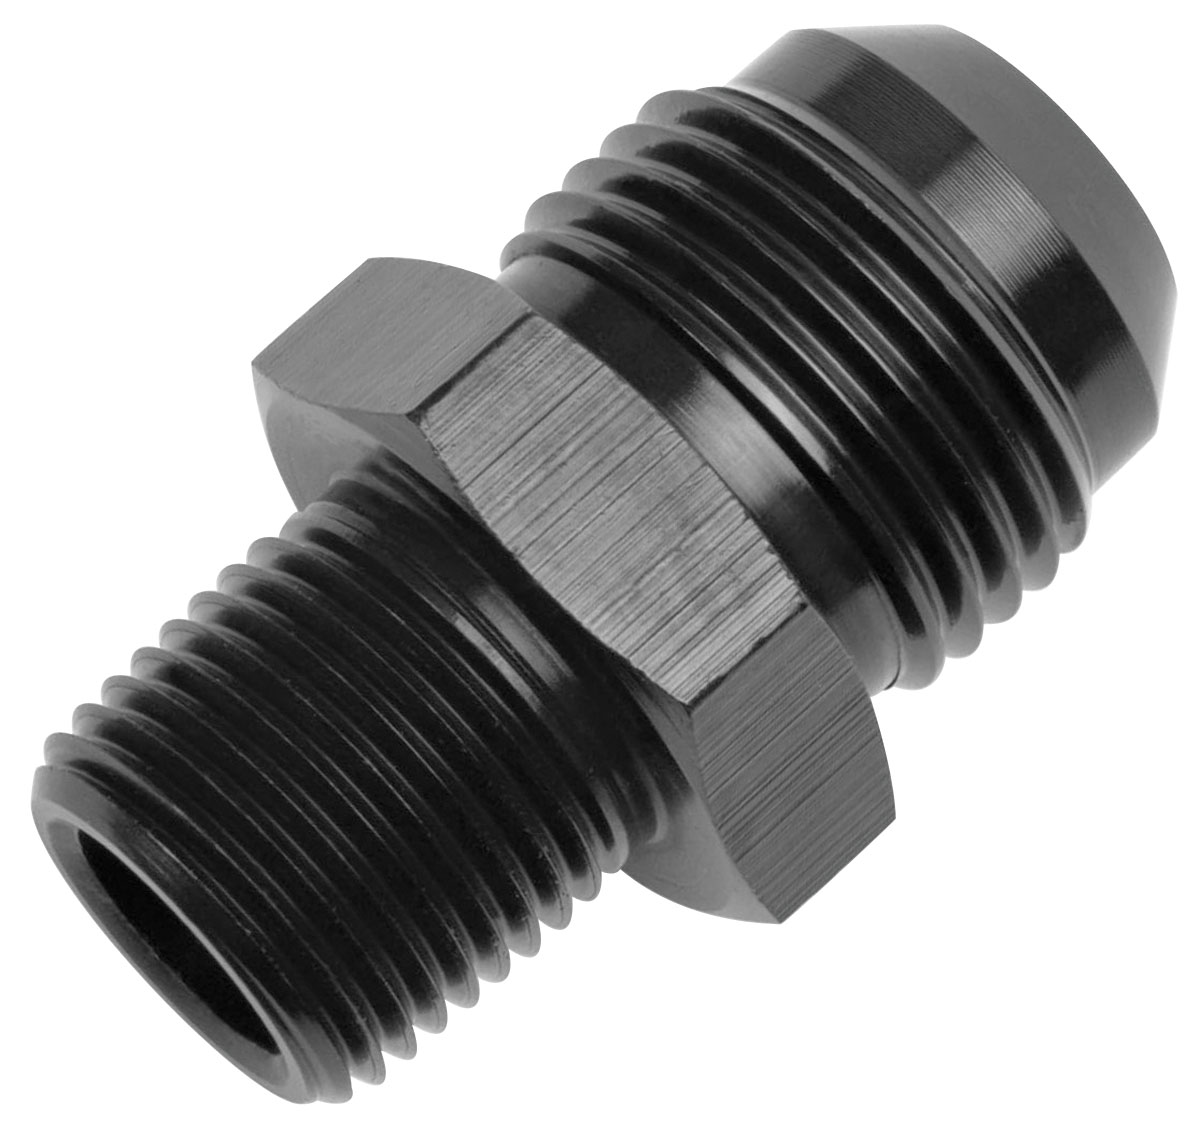 Photo of Adapter Fittings, Russell An-To-Npt, Straight -6 AN to 1/4""